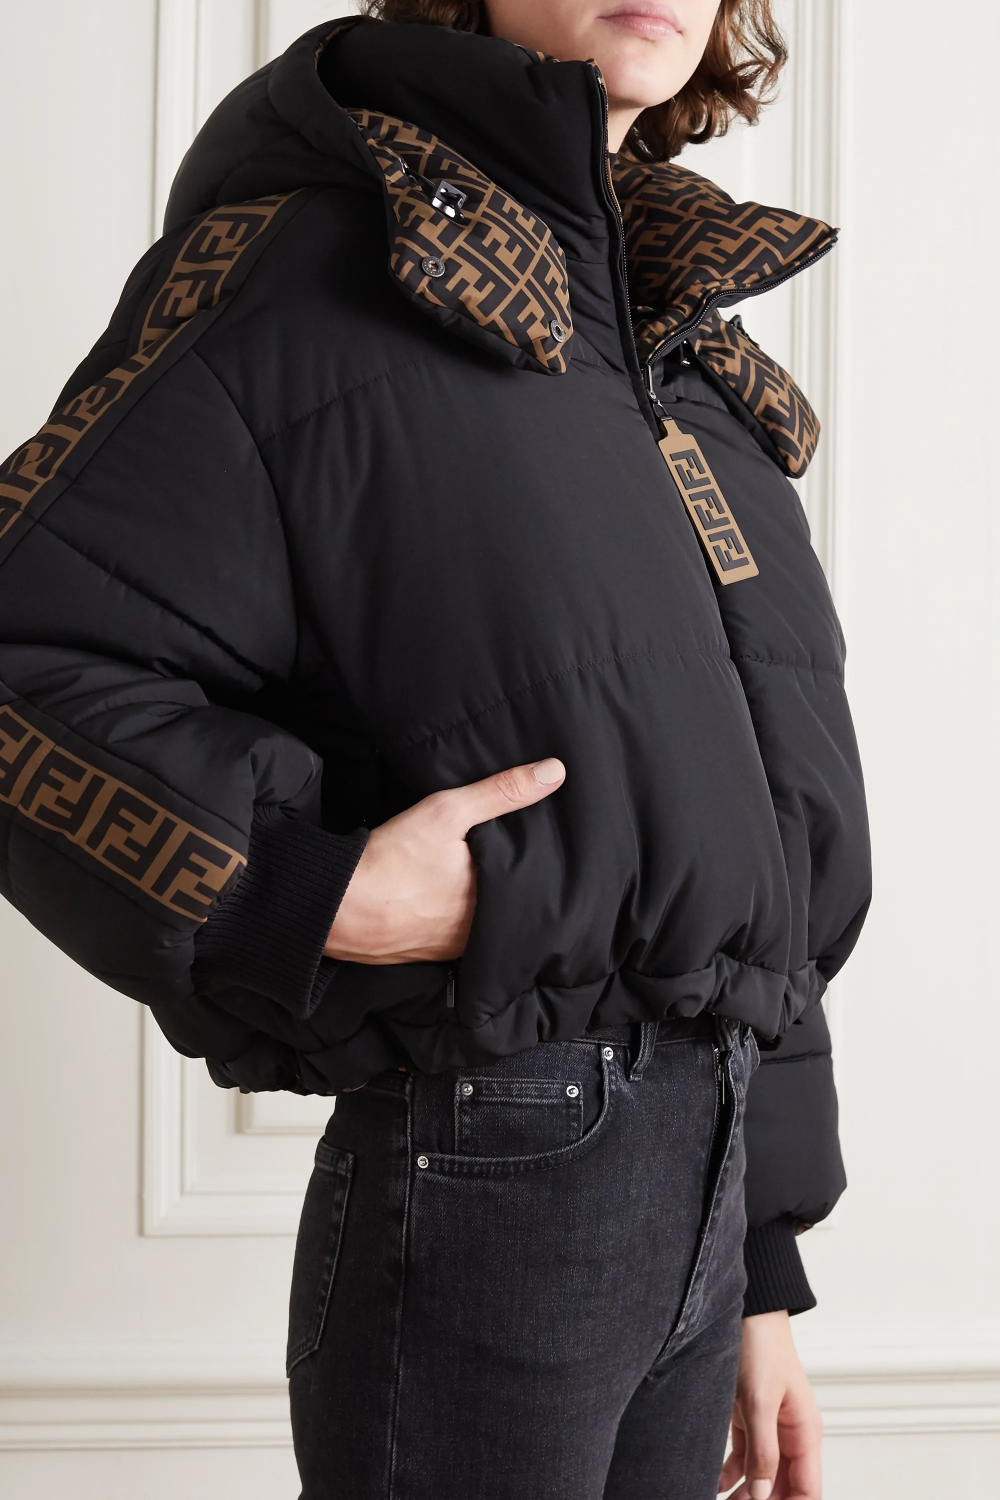 Black Reversible Printed Quilted Shell Down Bomber Jacket Fendi Net A Porter Comfy Outfits Winter Fendi Jacket Women Jackets [ 1500 x 1000 Pixel ]